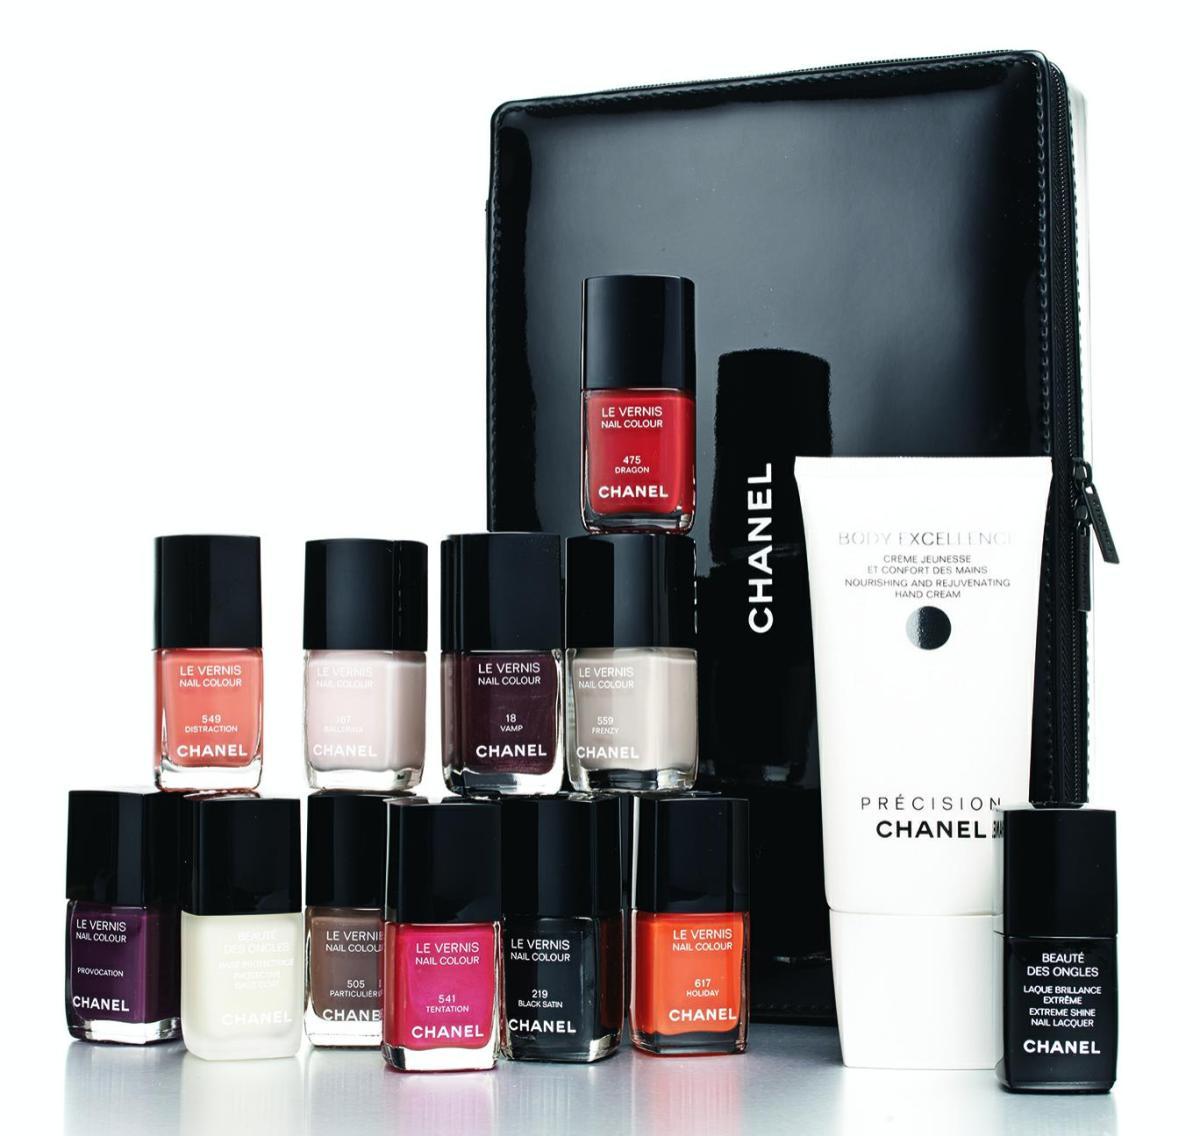 Introducing Paint Can, the world's first spray on nail polish - super easy application, rapid dry and available in 8 shades.